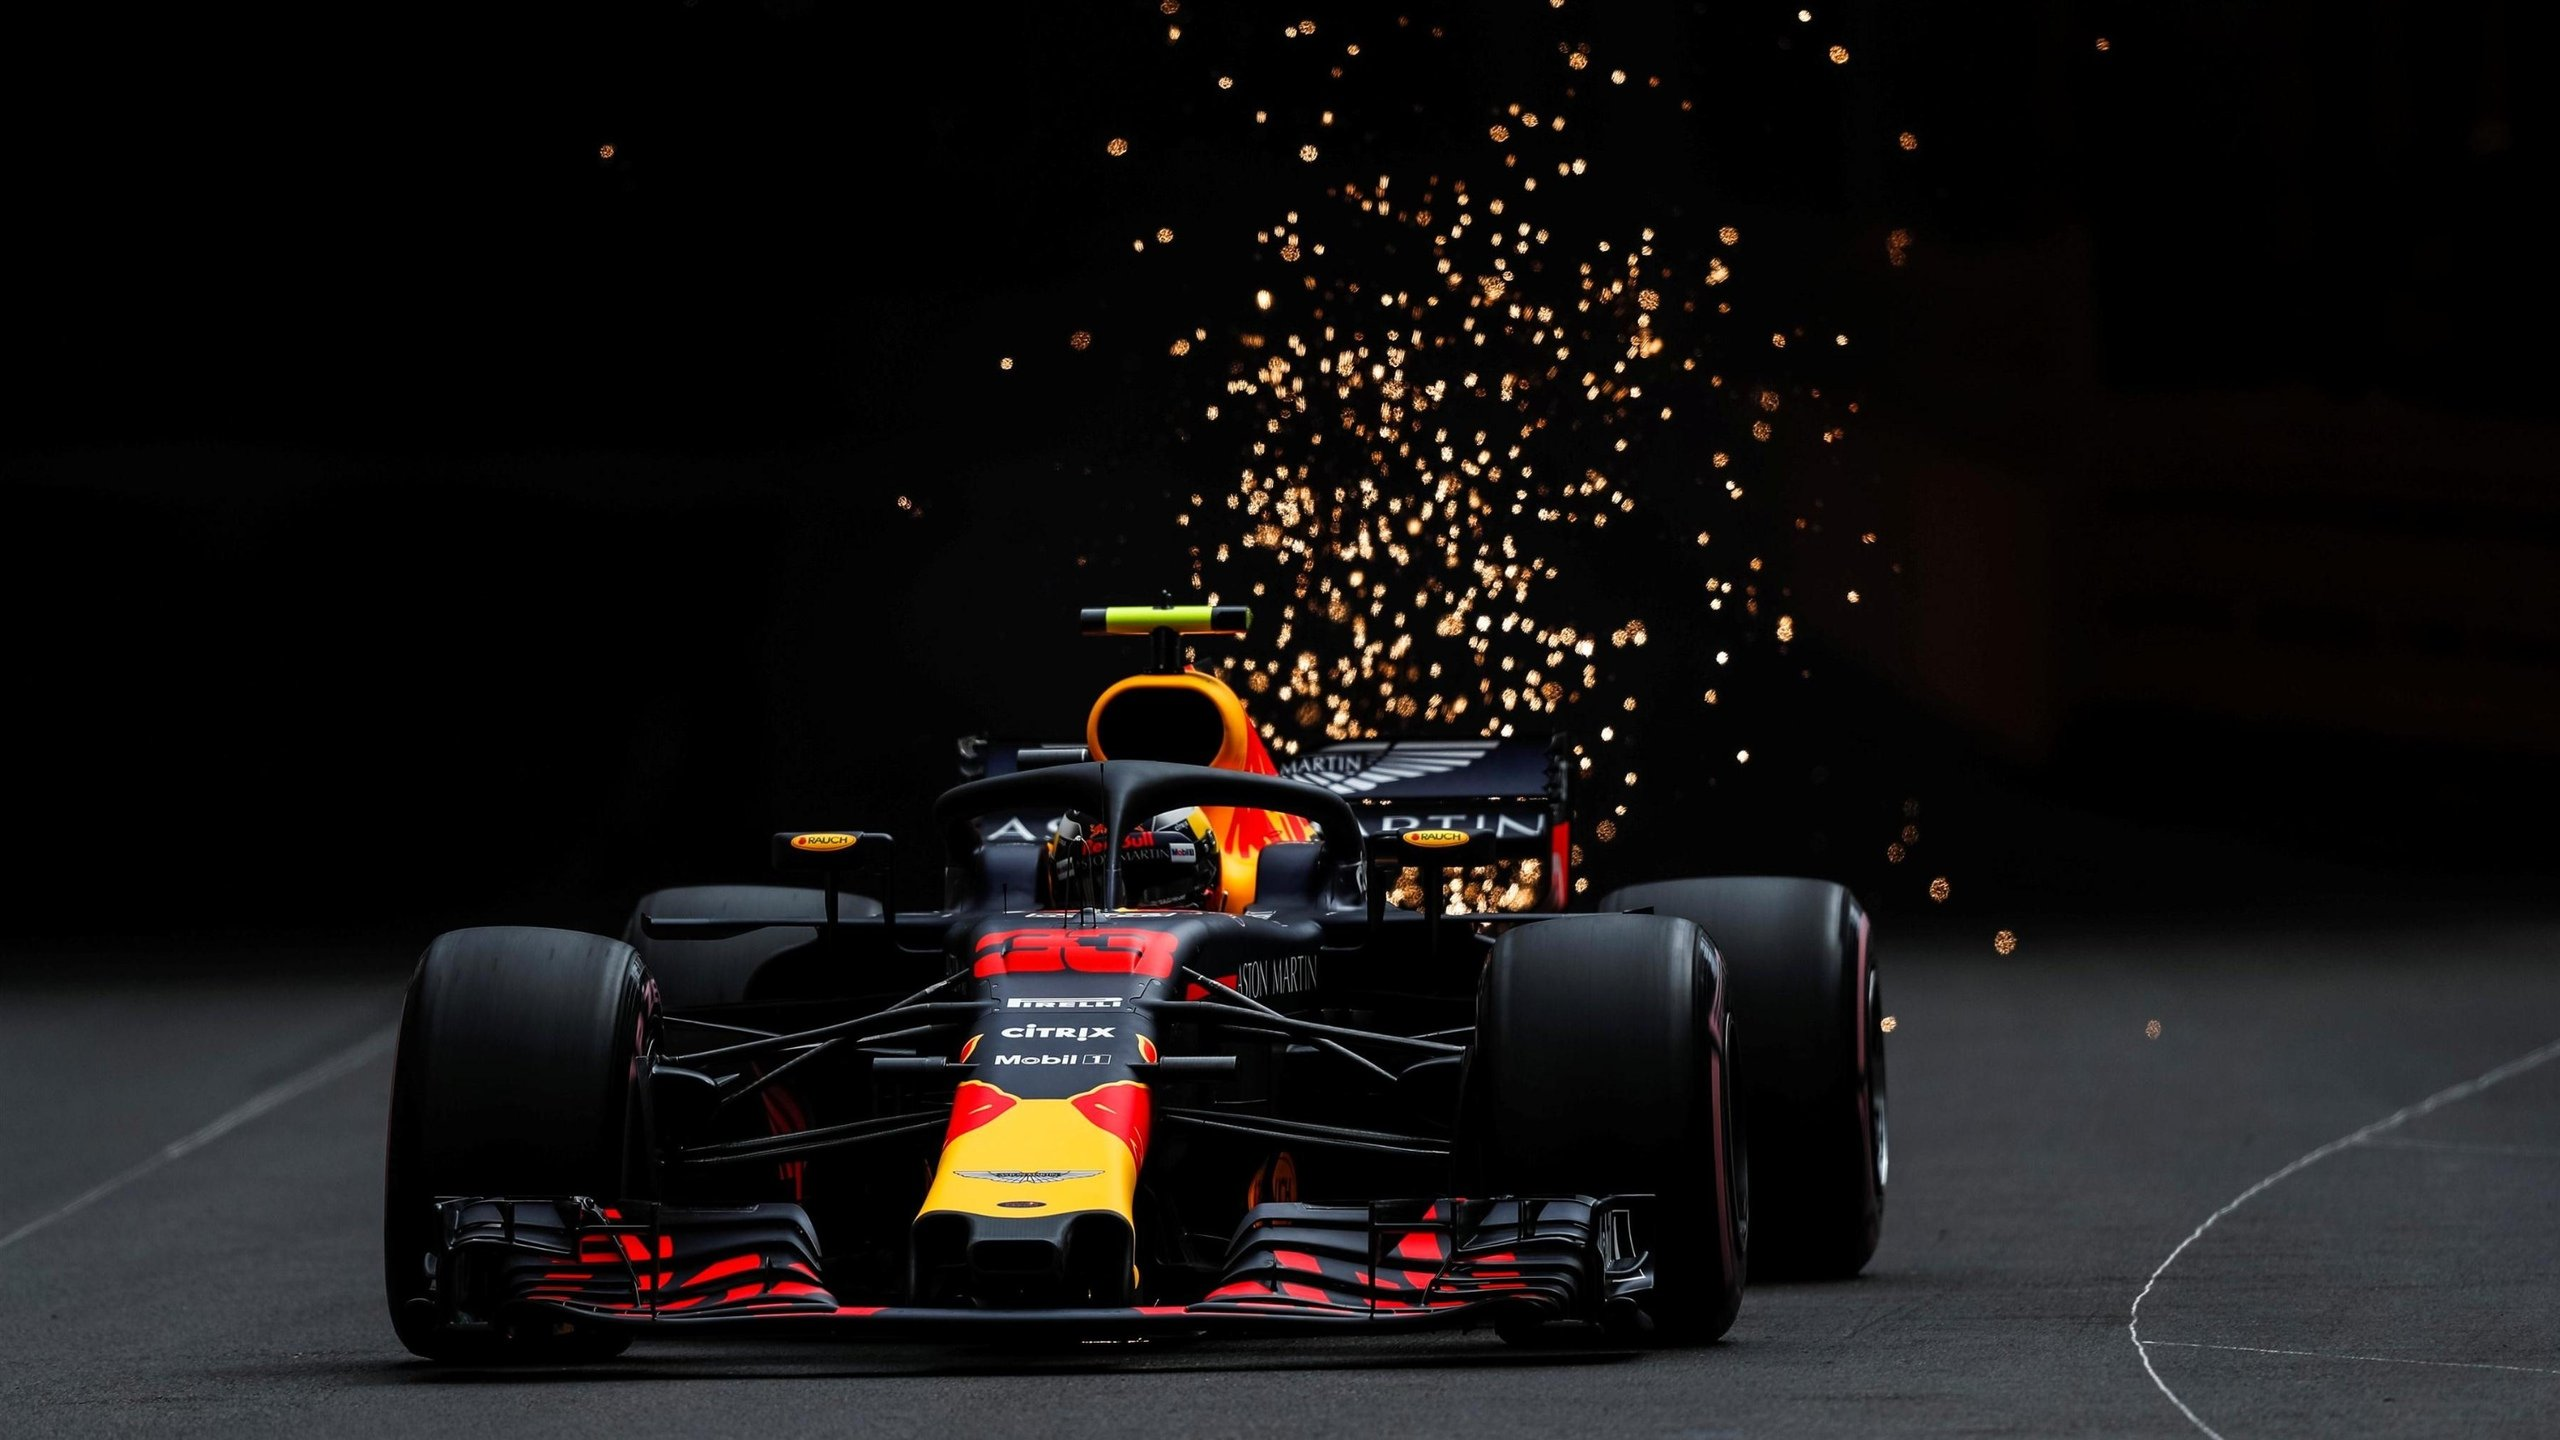 Red bull f1 4k wallpaper